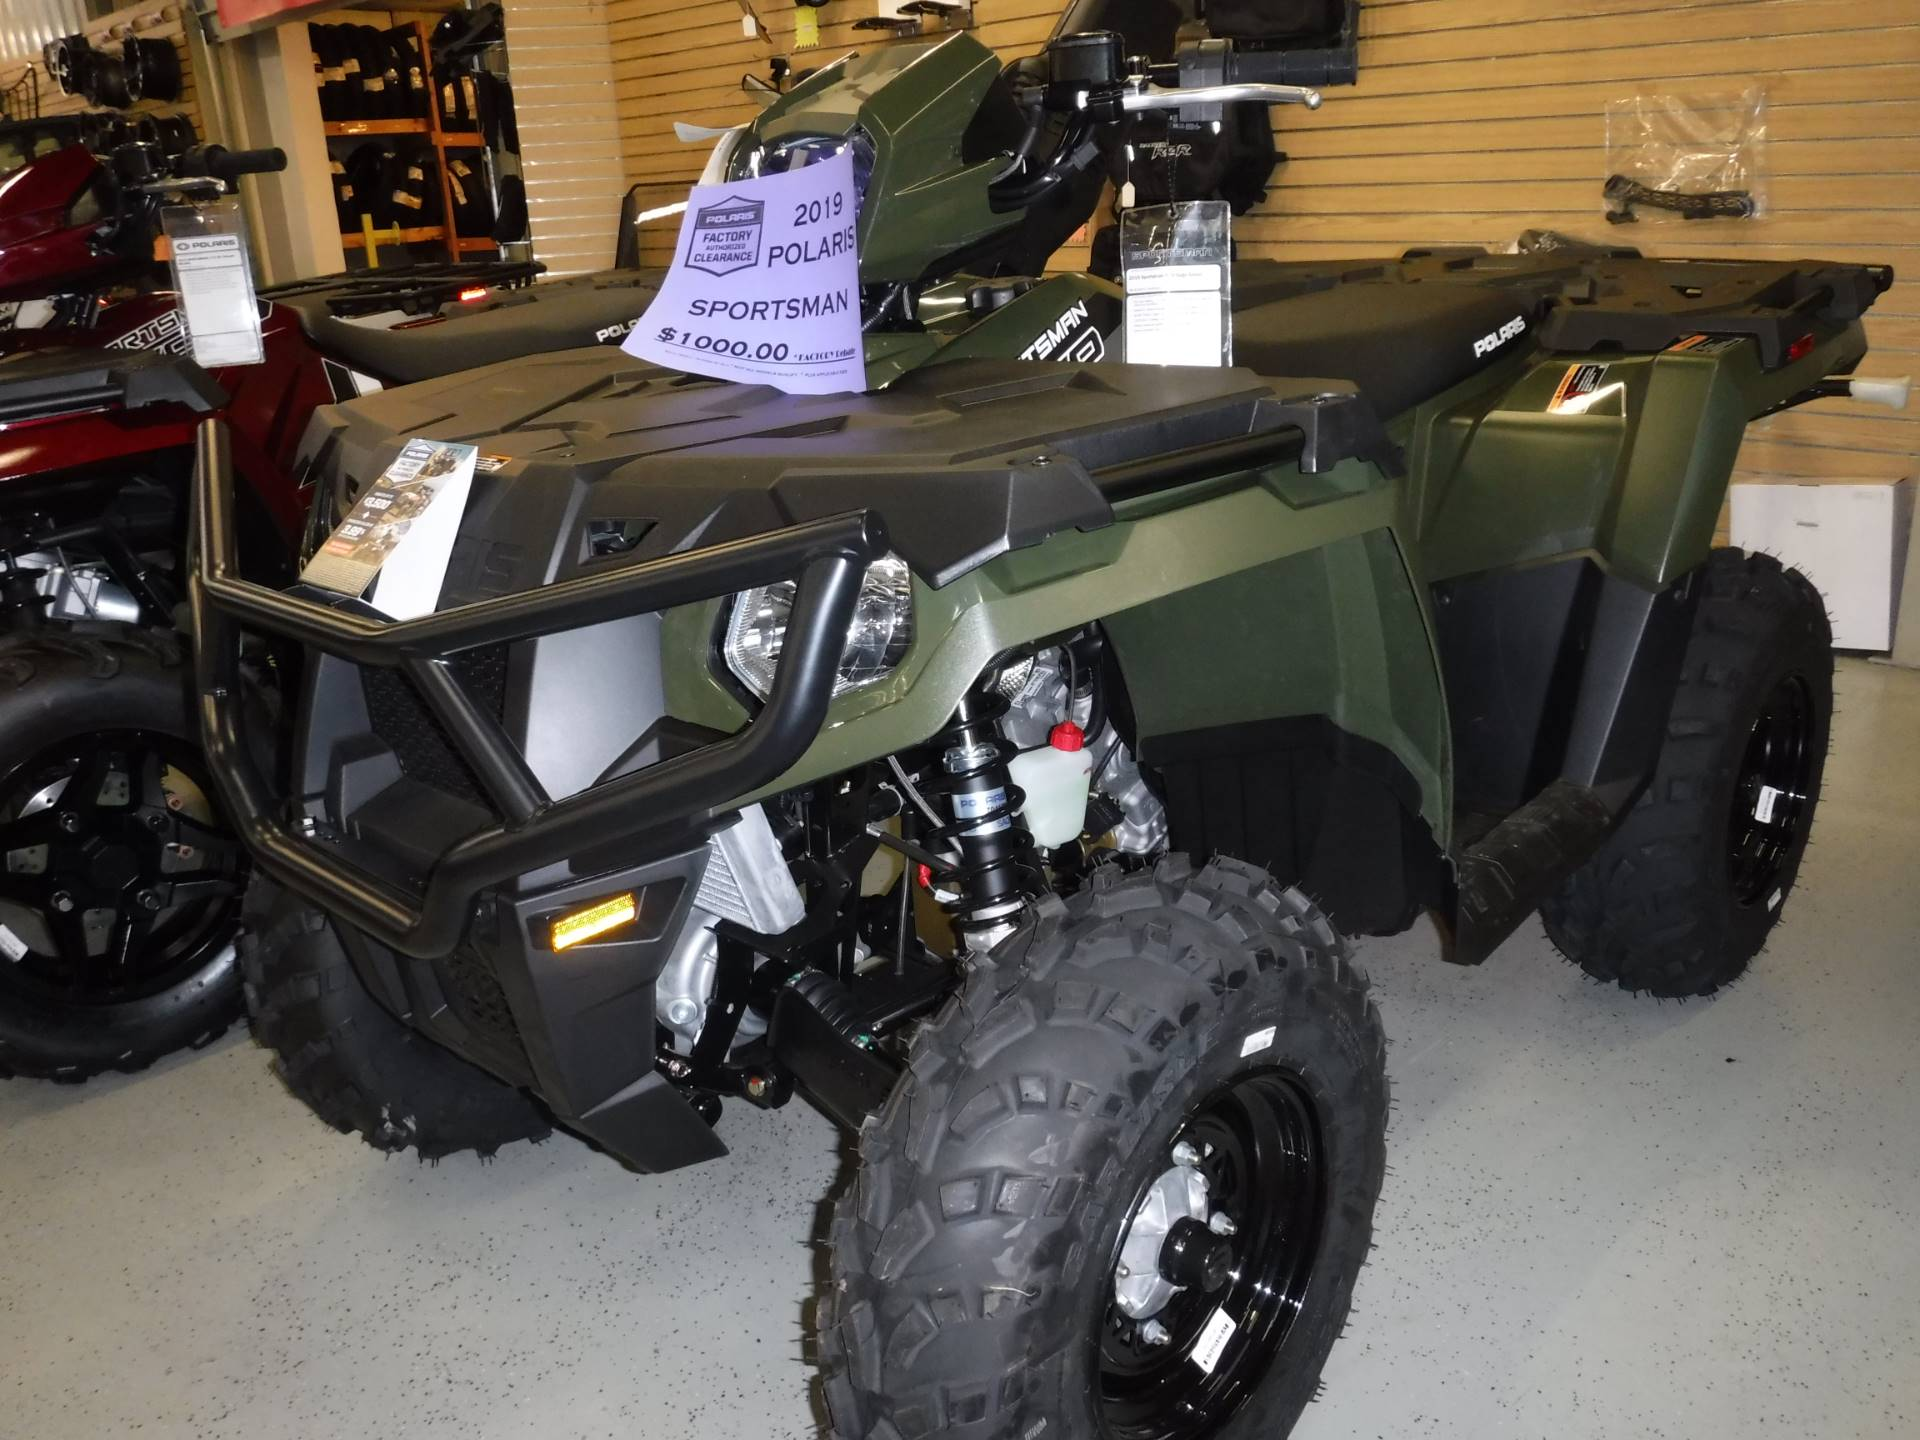 2019 Polaris Sportsman 570 in Hermitage, Pennsylvania - Photo 3